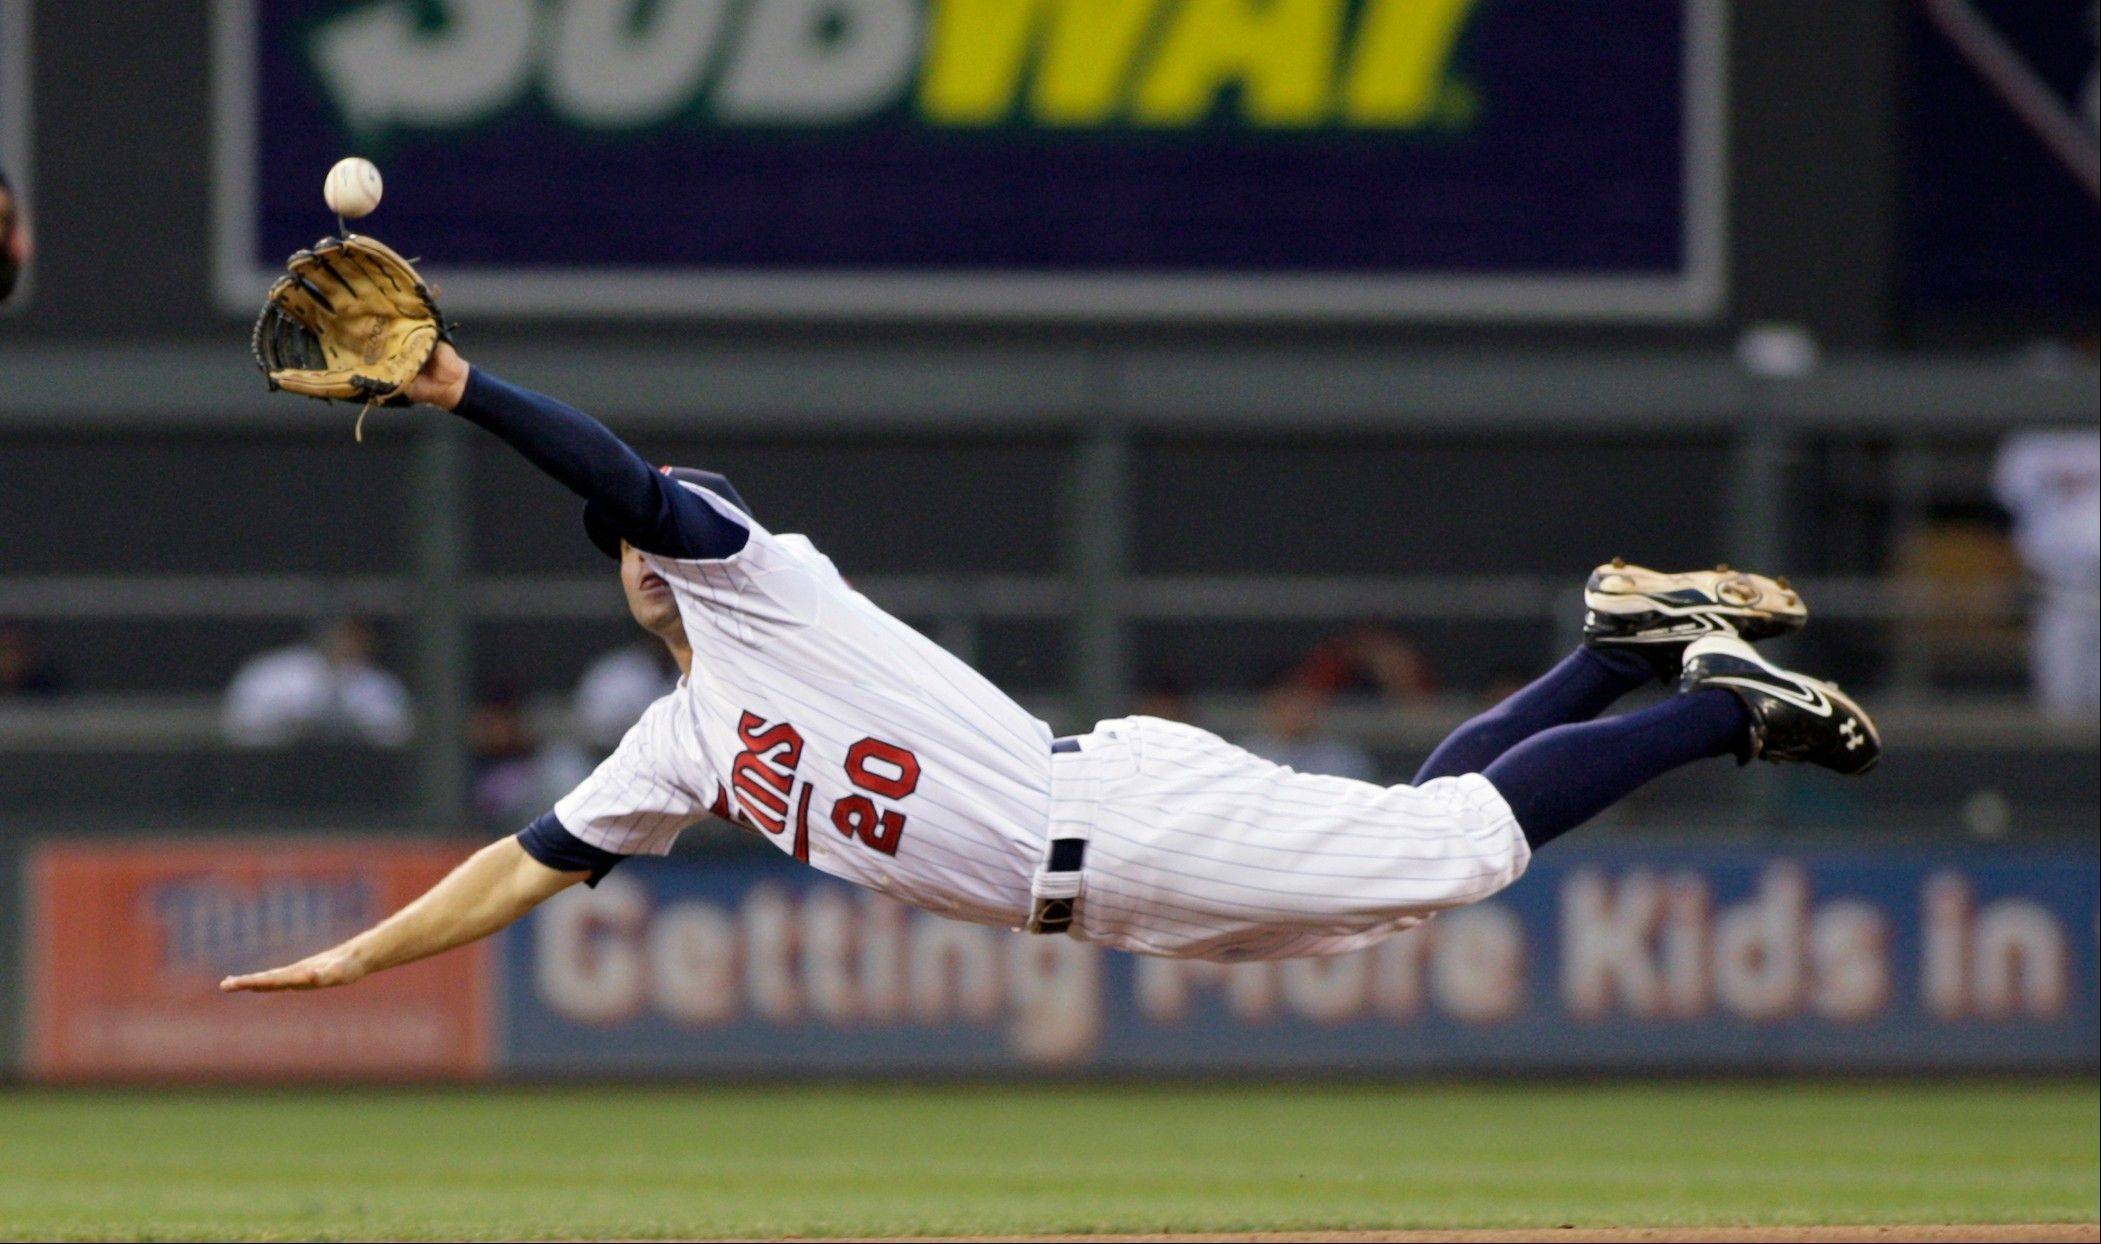 Twins shortstop Brian Dozier makes a diving catch on a line drive by Cleveland�s Brent Lillibridge during the seventh inning Saturday in Minneapolis.